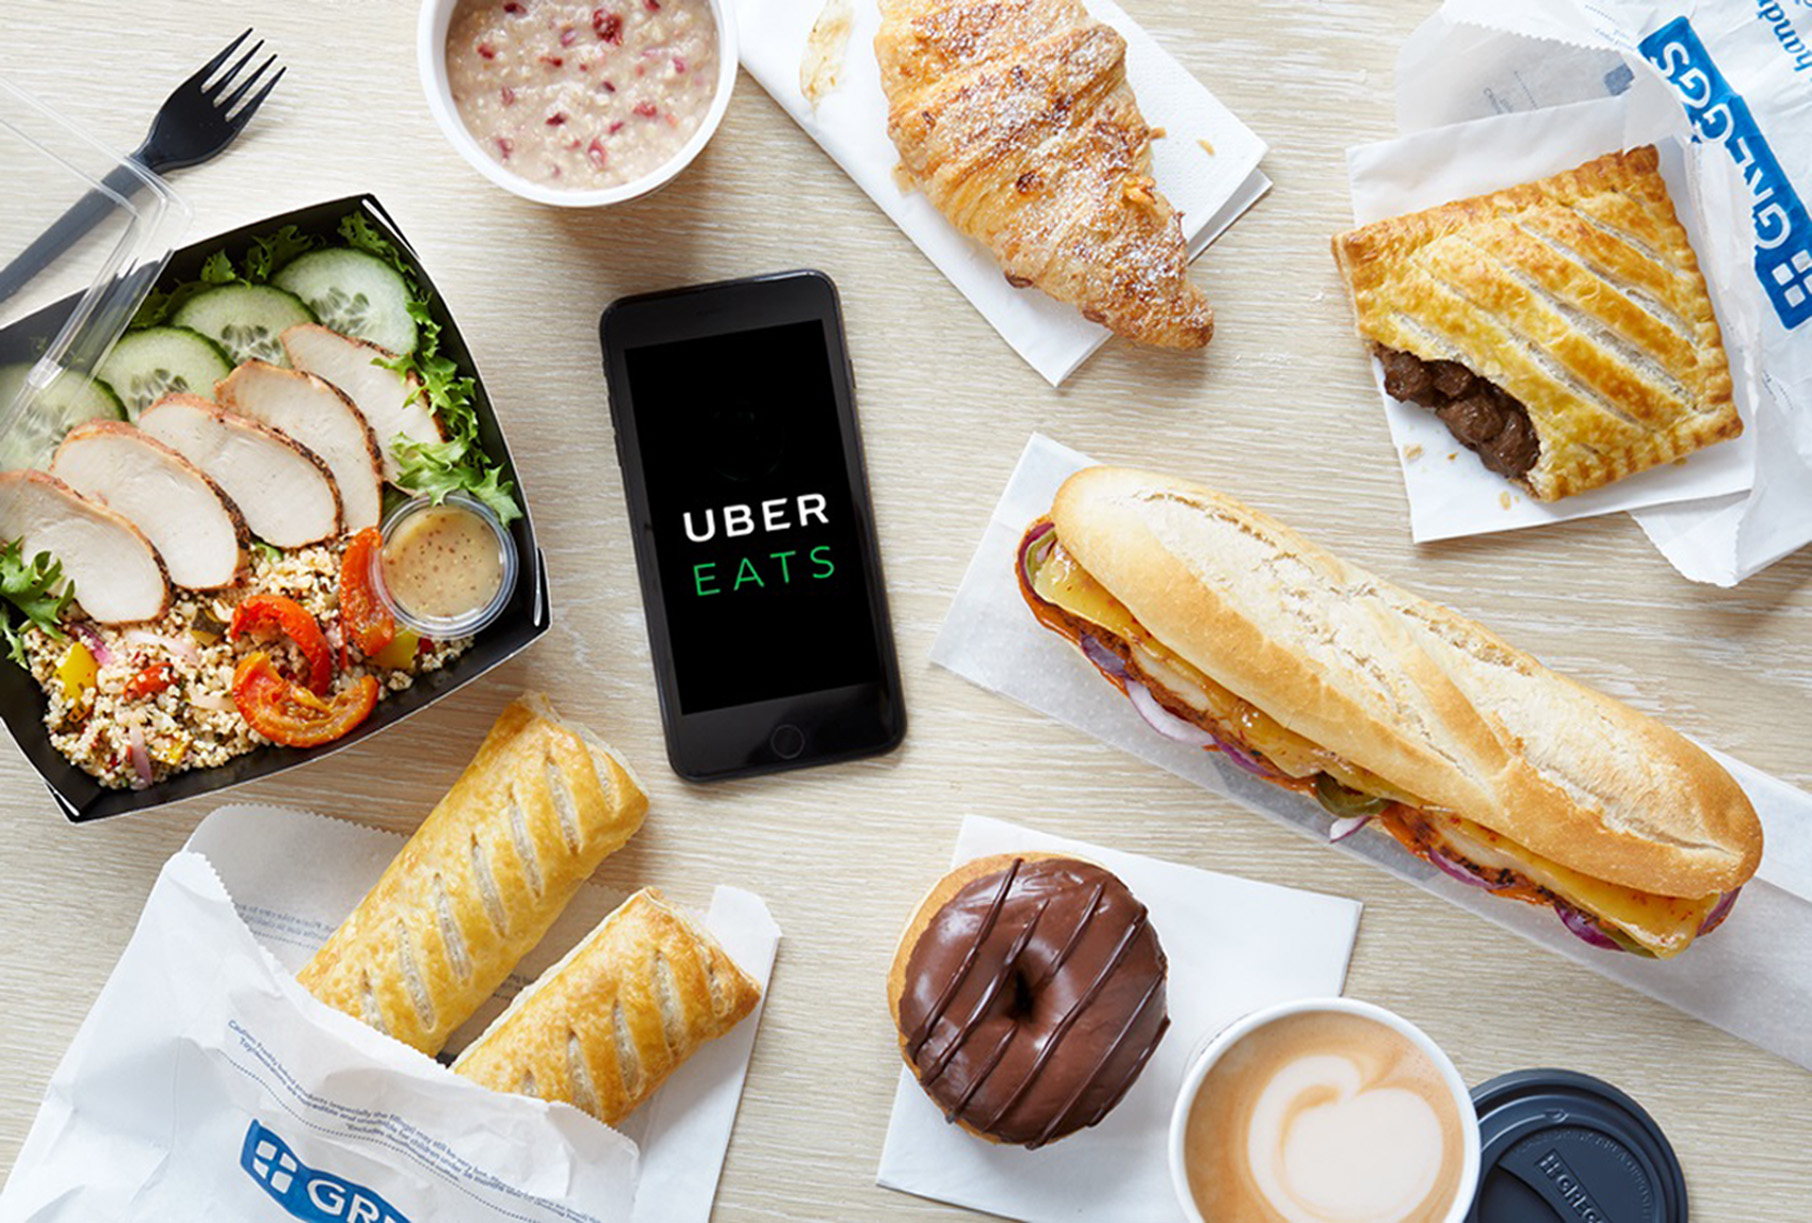 Greggs has teamed up with the firm UberEATS to offer the service through its app, offering delivery up to one mile away from participating shops. (Greggs/PA Wire)